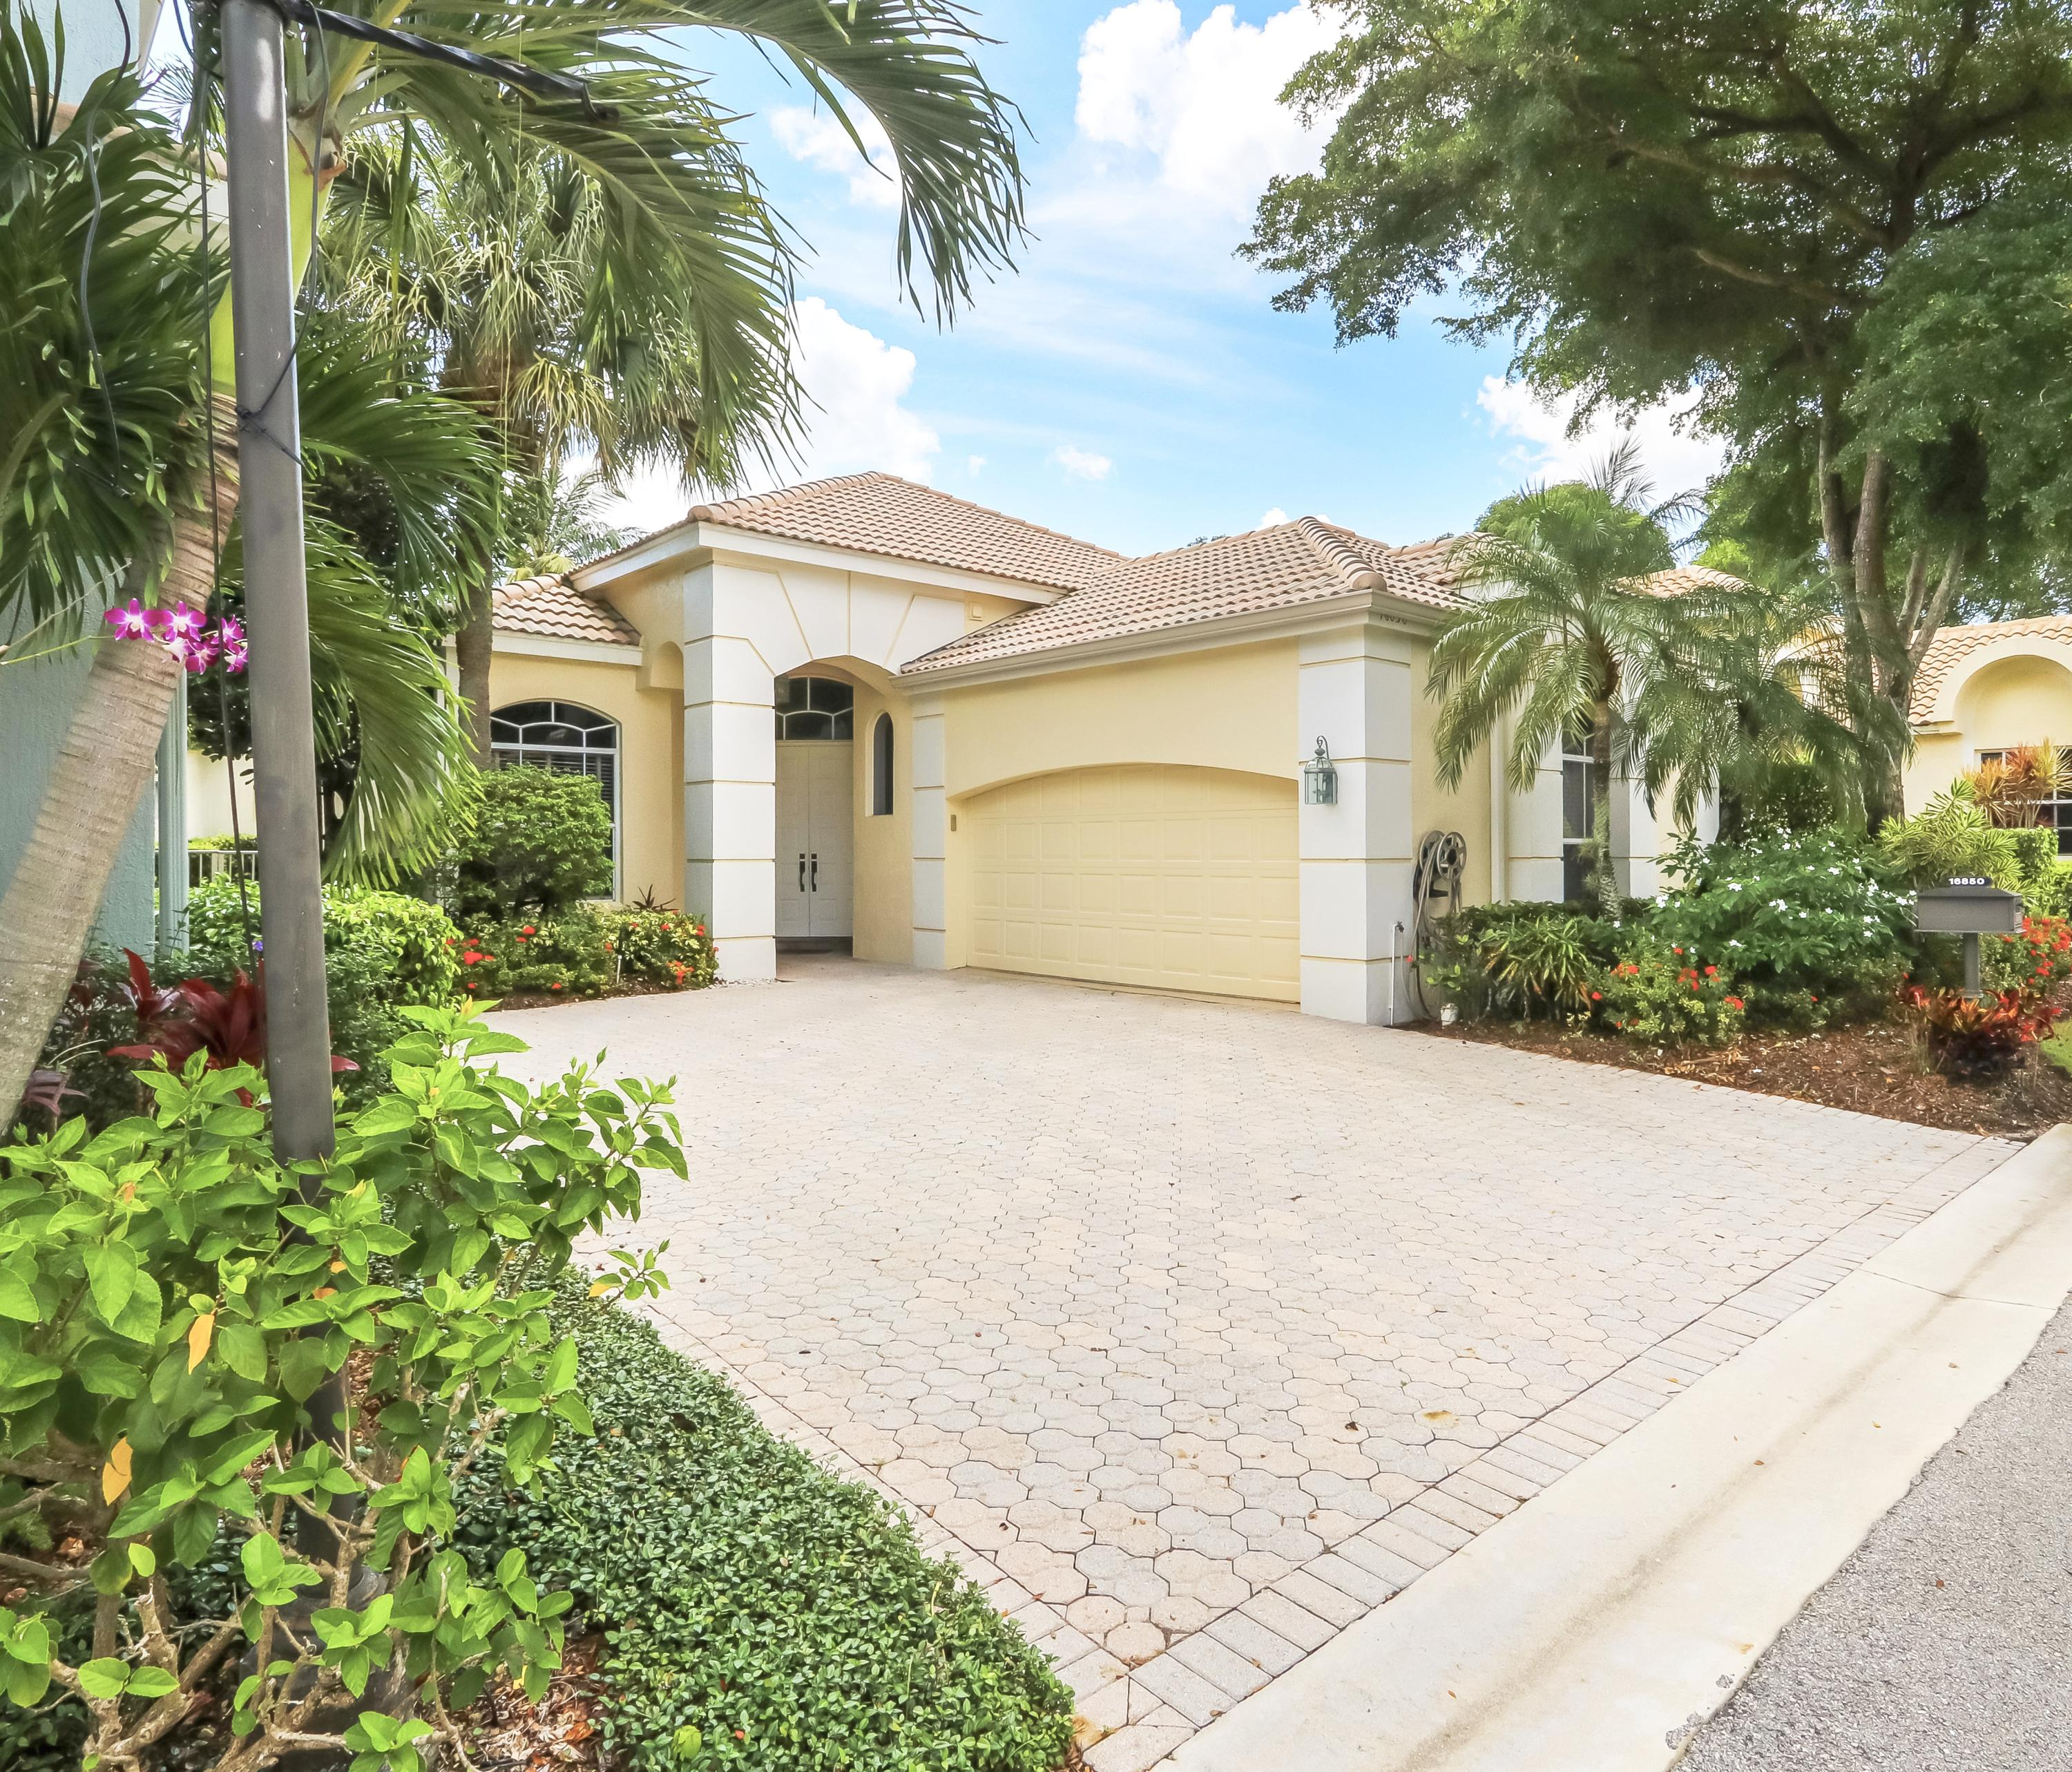 16850 Knightsbridge Lane  Delray Beach, FL 33484